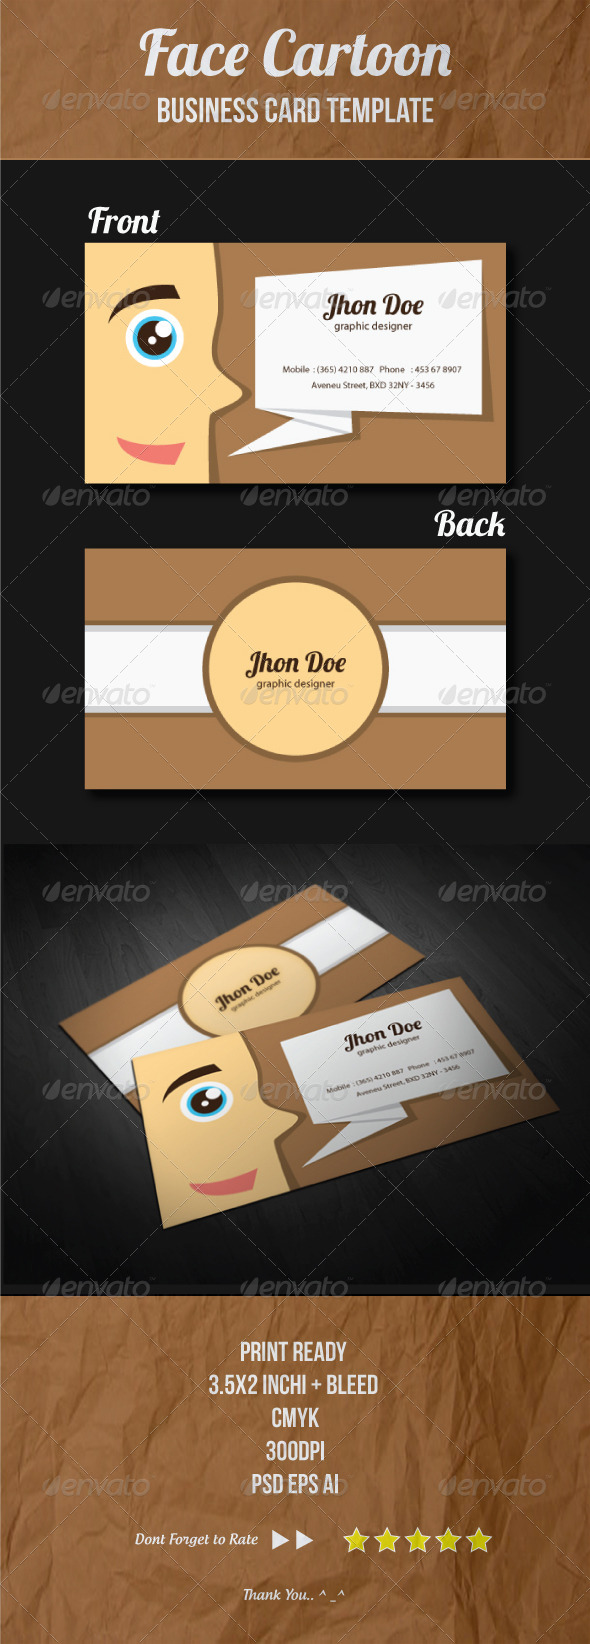 GraphicRiver Face Cartoon Business Card Template 4289048